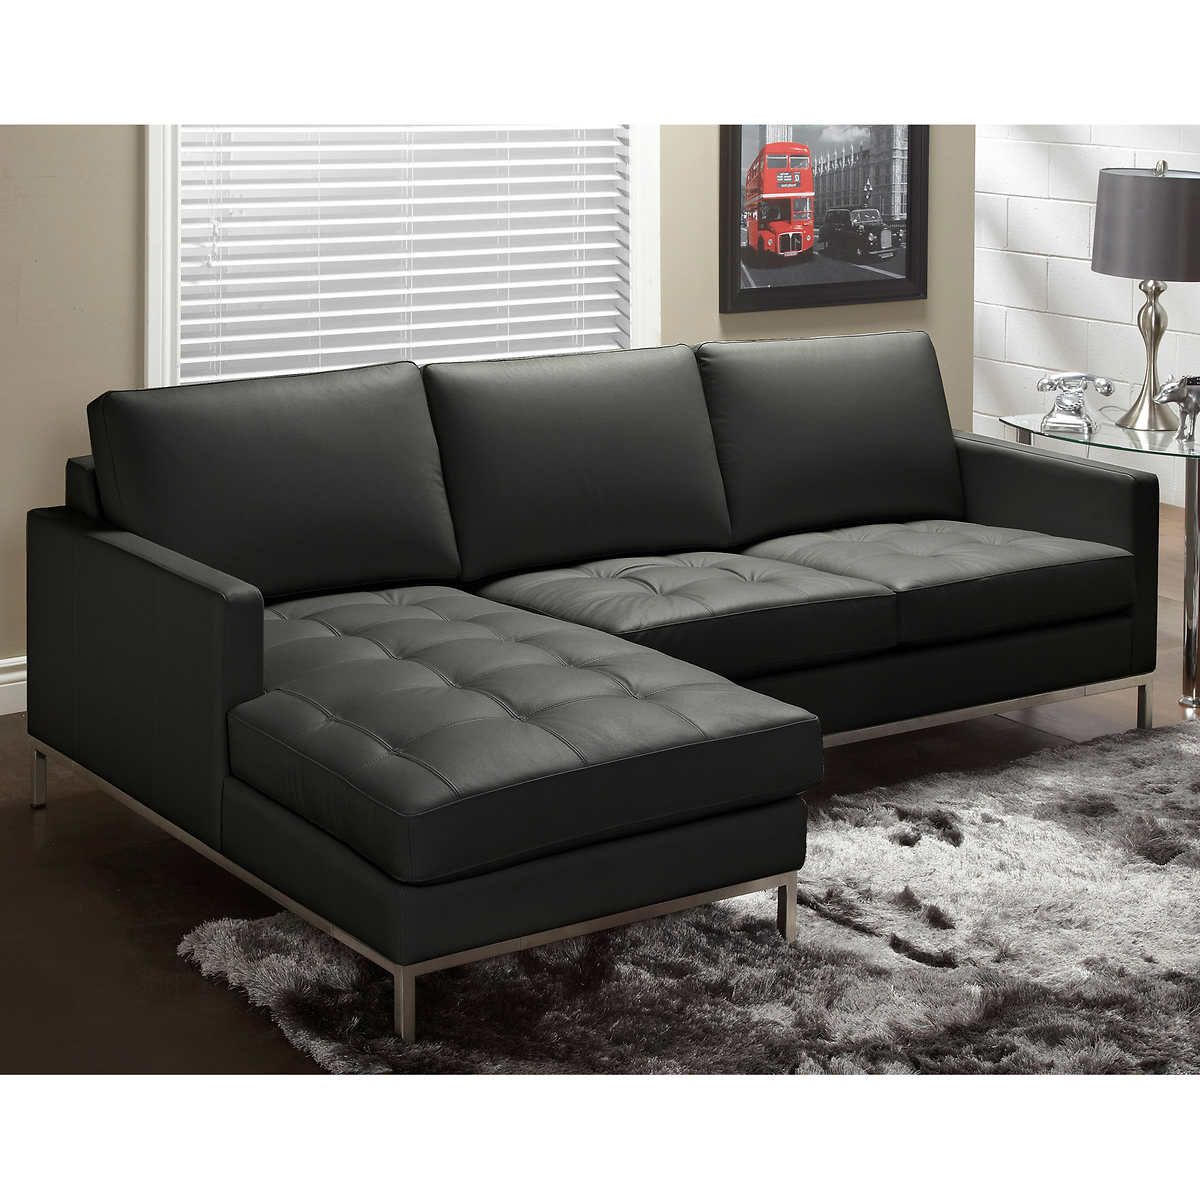 Awesome 2018 Best Black Leather Sofa Beds Luxury Elegance And Gmtry Best Dining Table And Chair Ideas Images Gmtryco